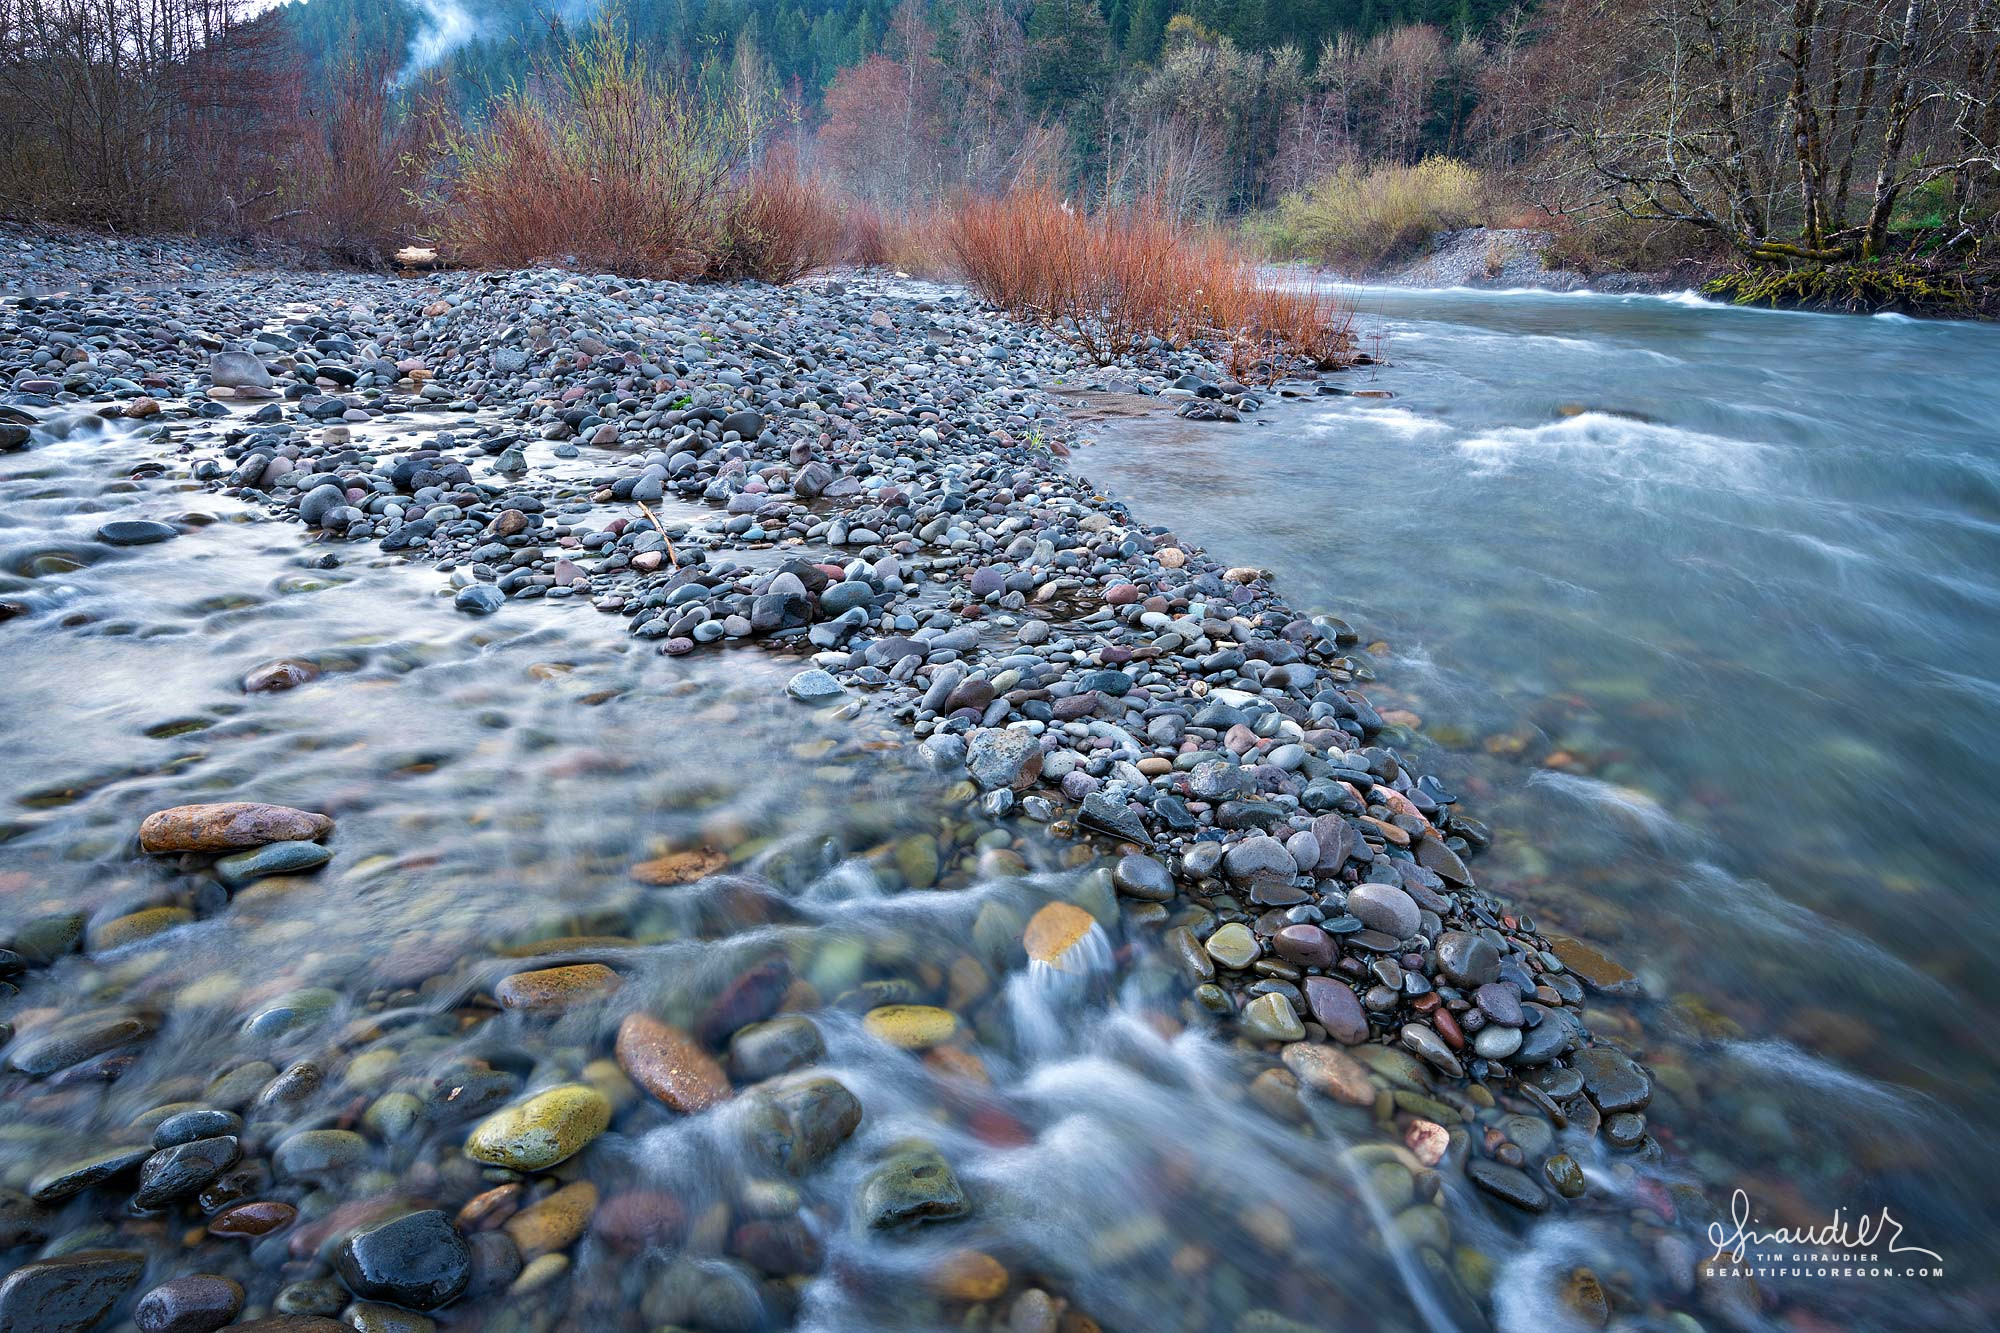 Confluence of the North Fork Middle Fork and Willamette Rivers in the mountain community of Westfir. Willamette National Forest, Oregon West Cascades.